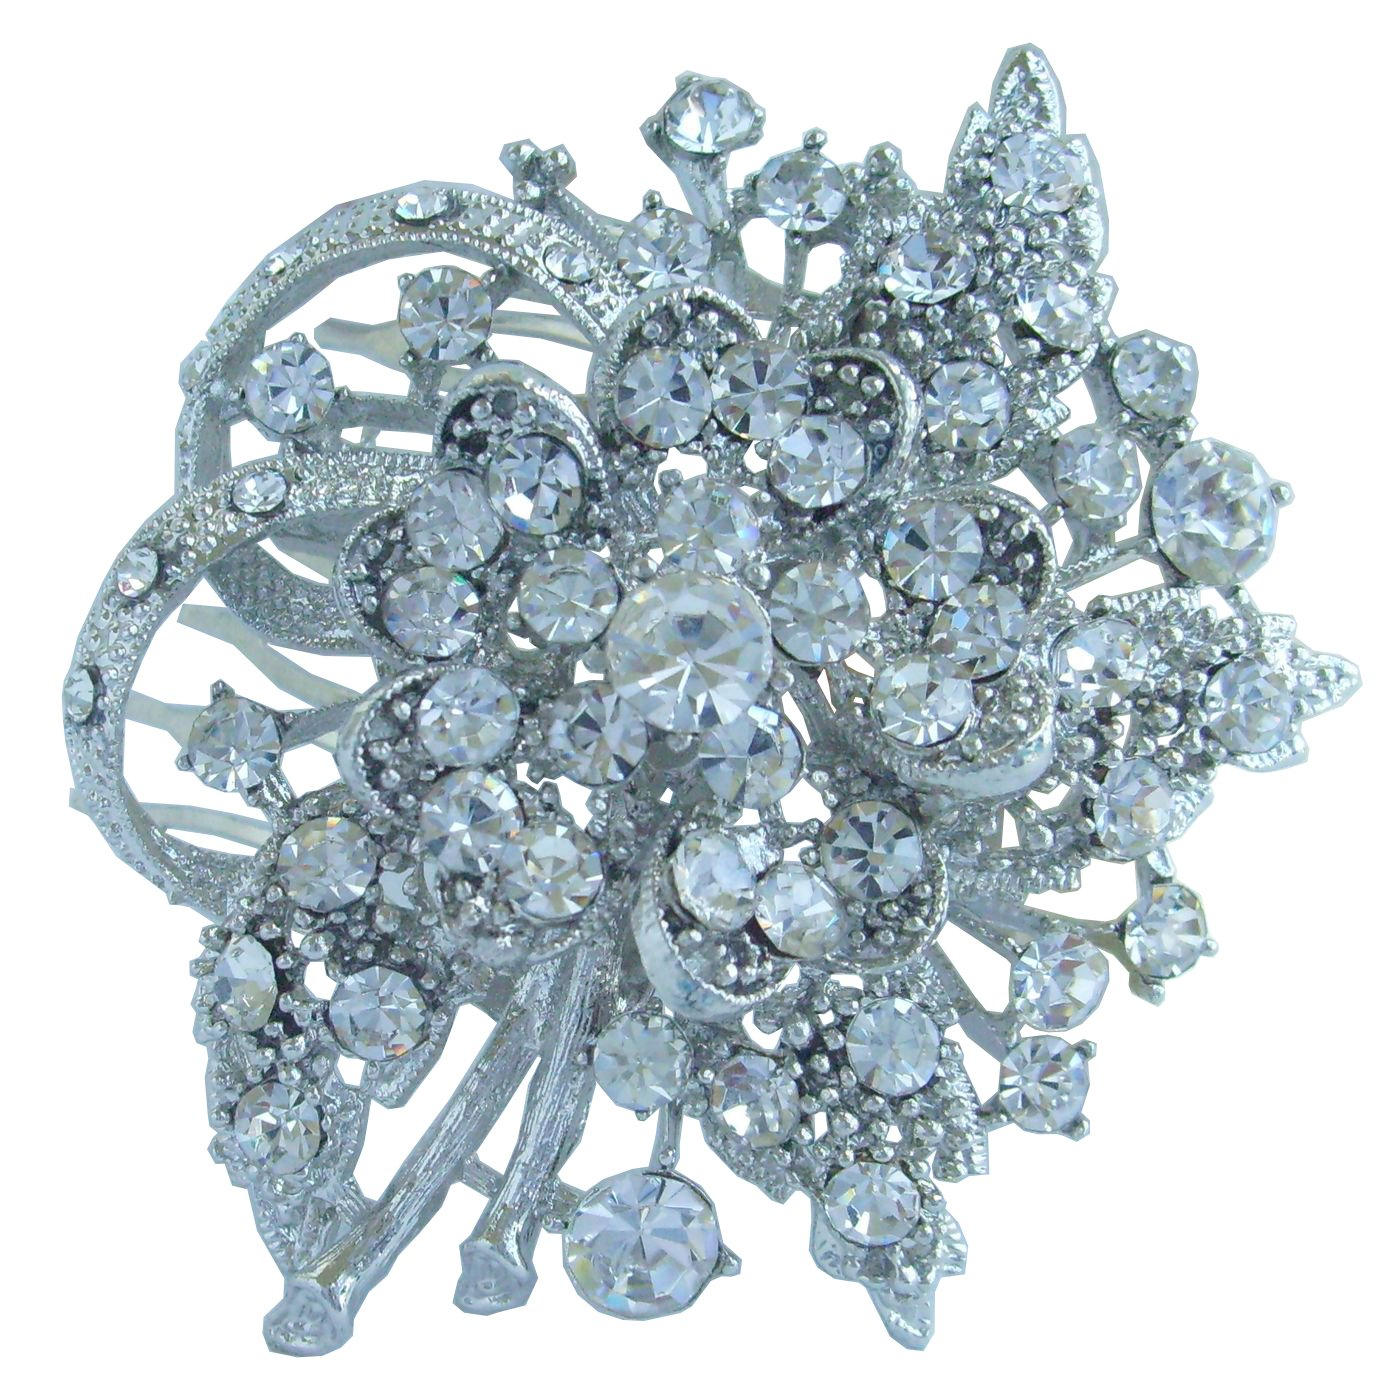 Sindary 2.56'' Silver Tone Clear Rhinestone Crystal Bridal Flower Hair Comb Wedding Headpiece HZ4646